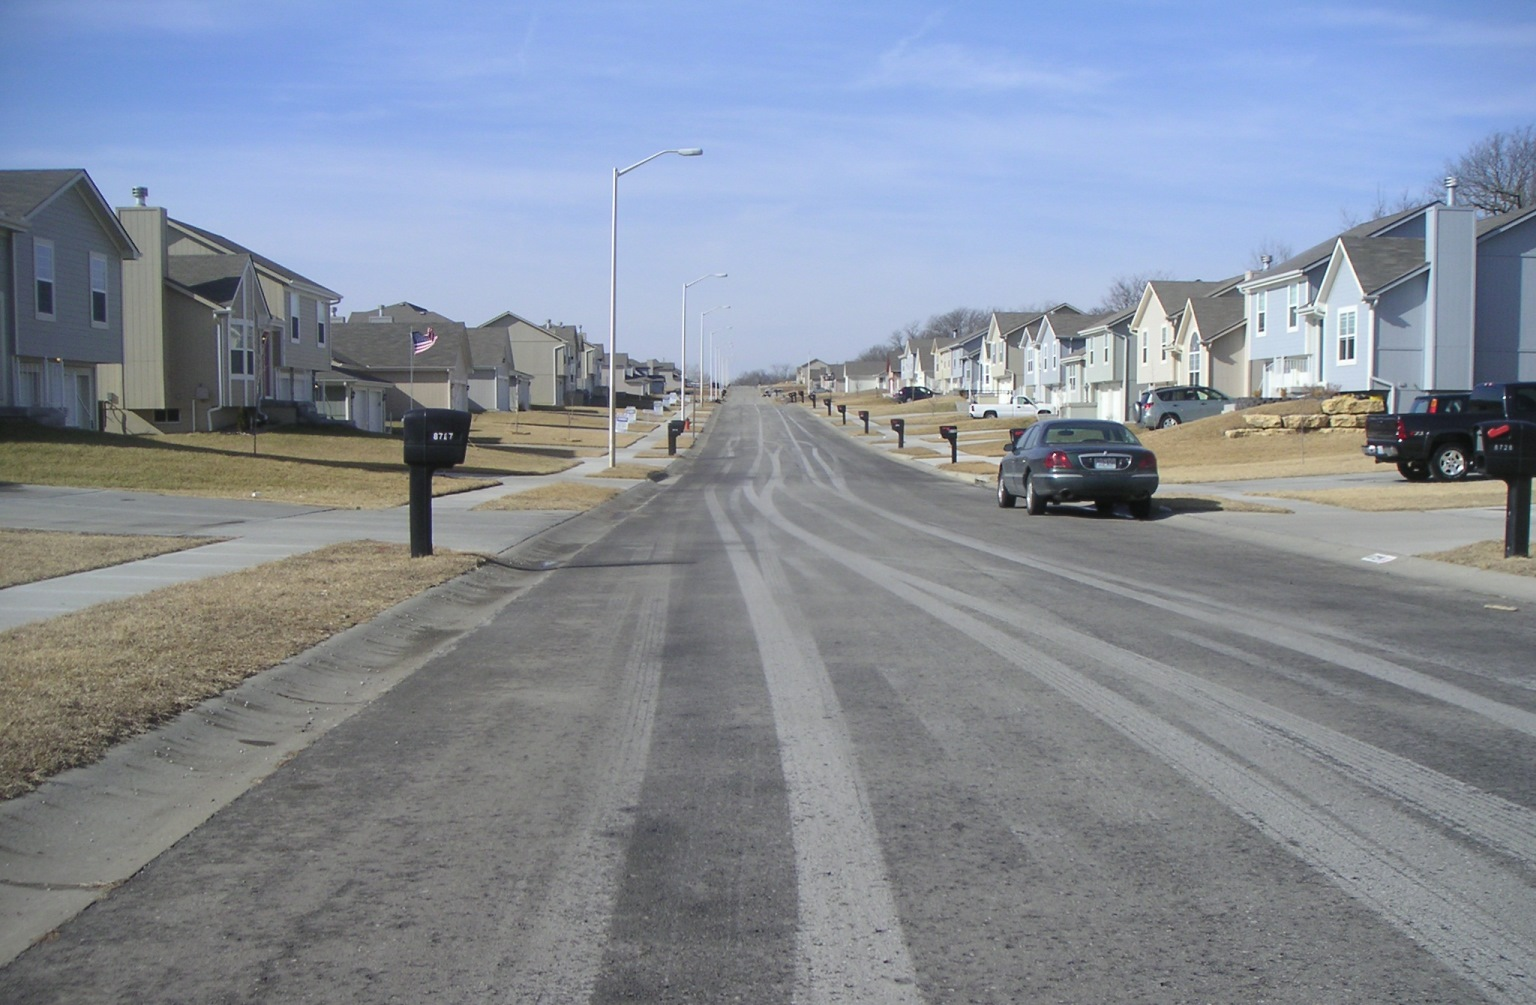 street with no trees